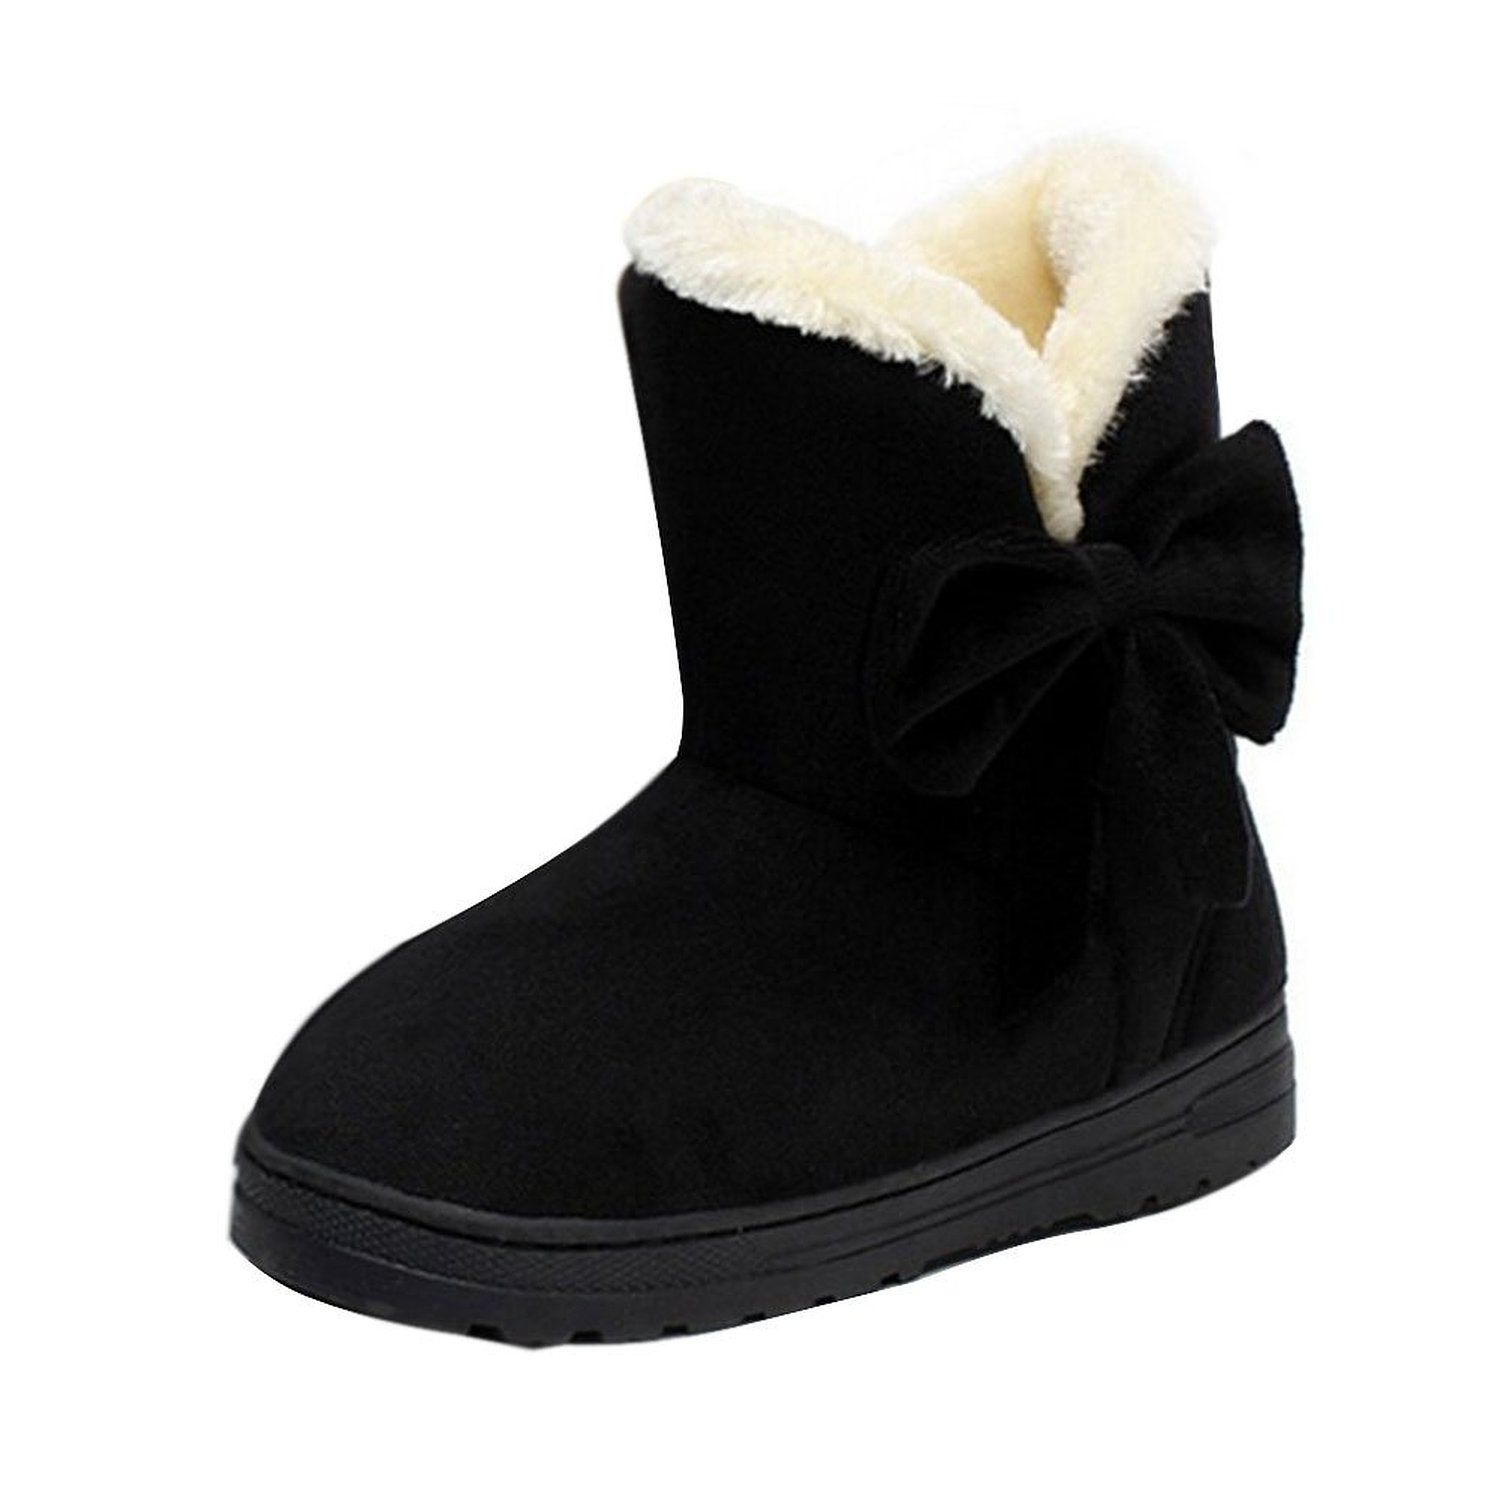 Maybest Womens Winter Classic Faux Fur Snow Ankle Boots Midcalf Bowknot  Flat Shoes Black 9 B M